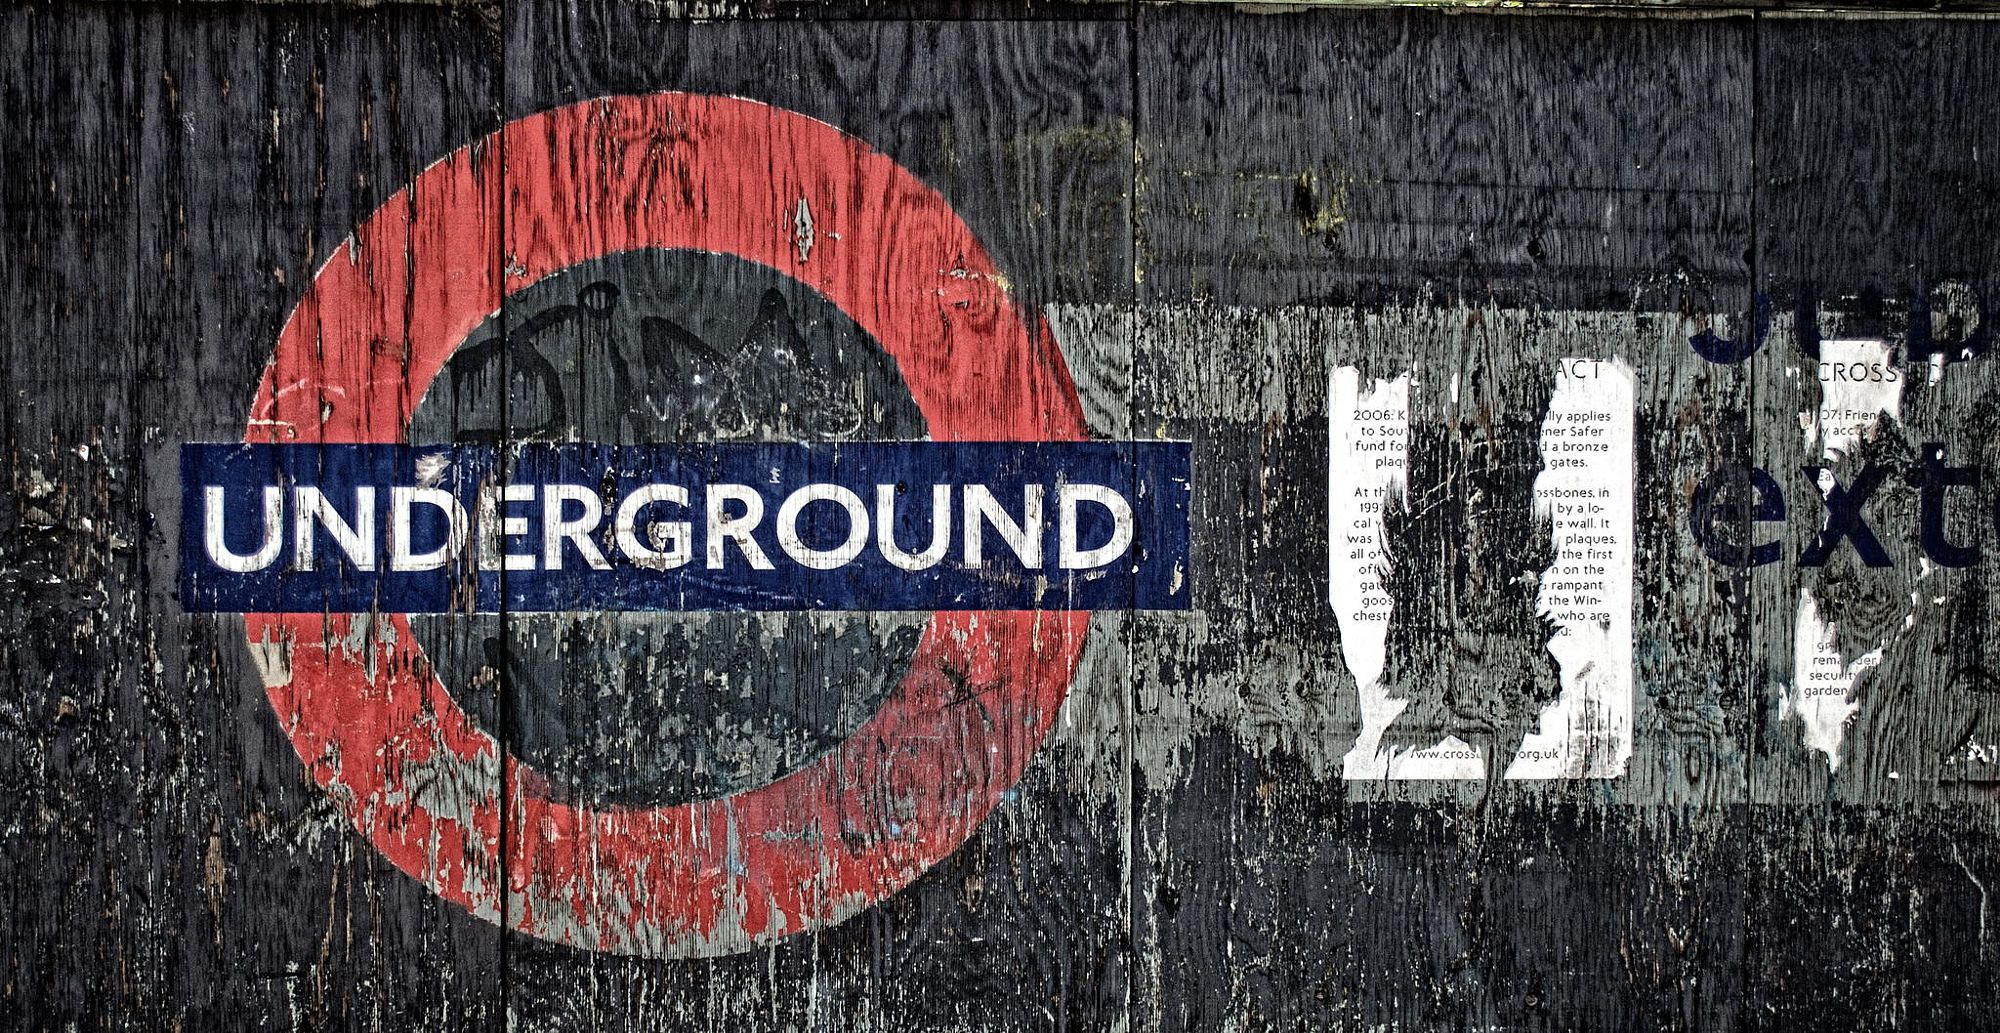 An old sign showing where Underground work had once been carried out next to the Cross Bones graveyard for the 'The Outcast Dead'.  http://www.crossbones.org.uk/